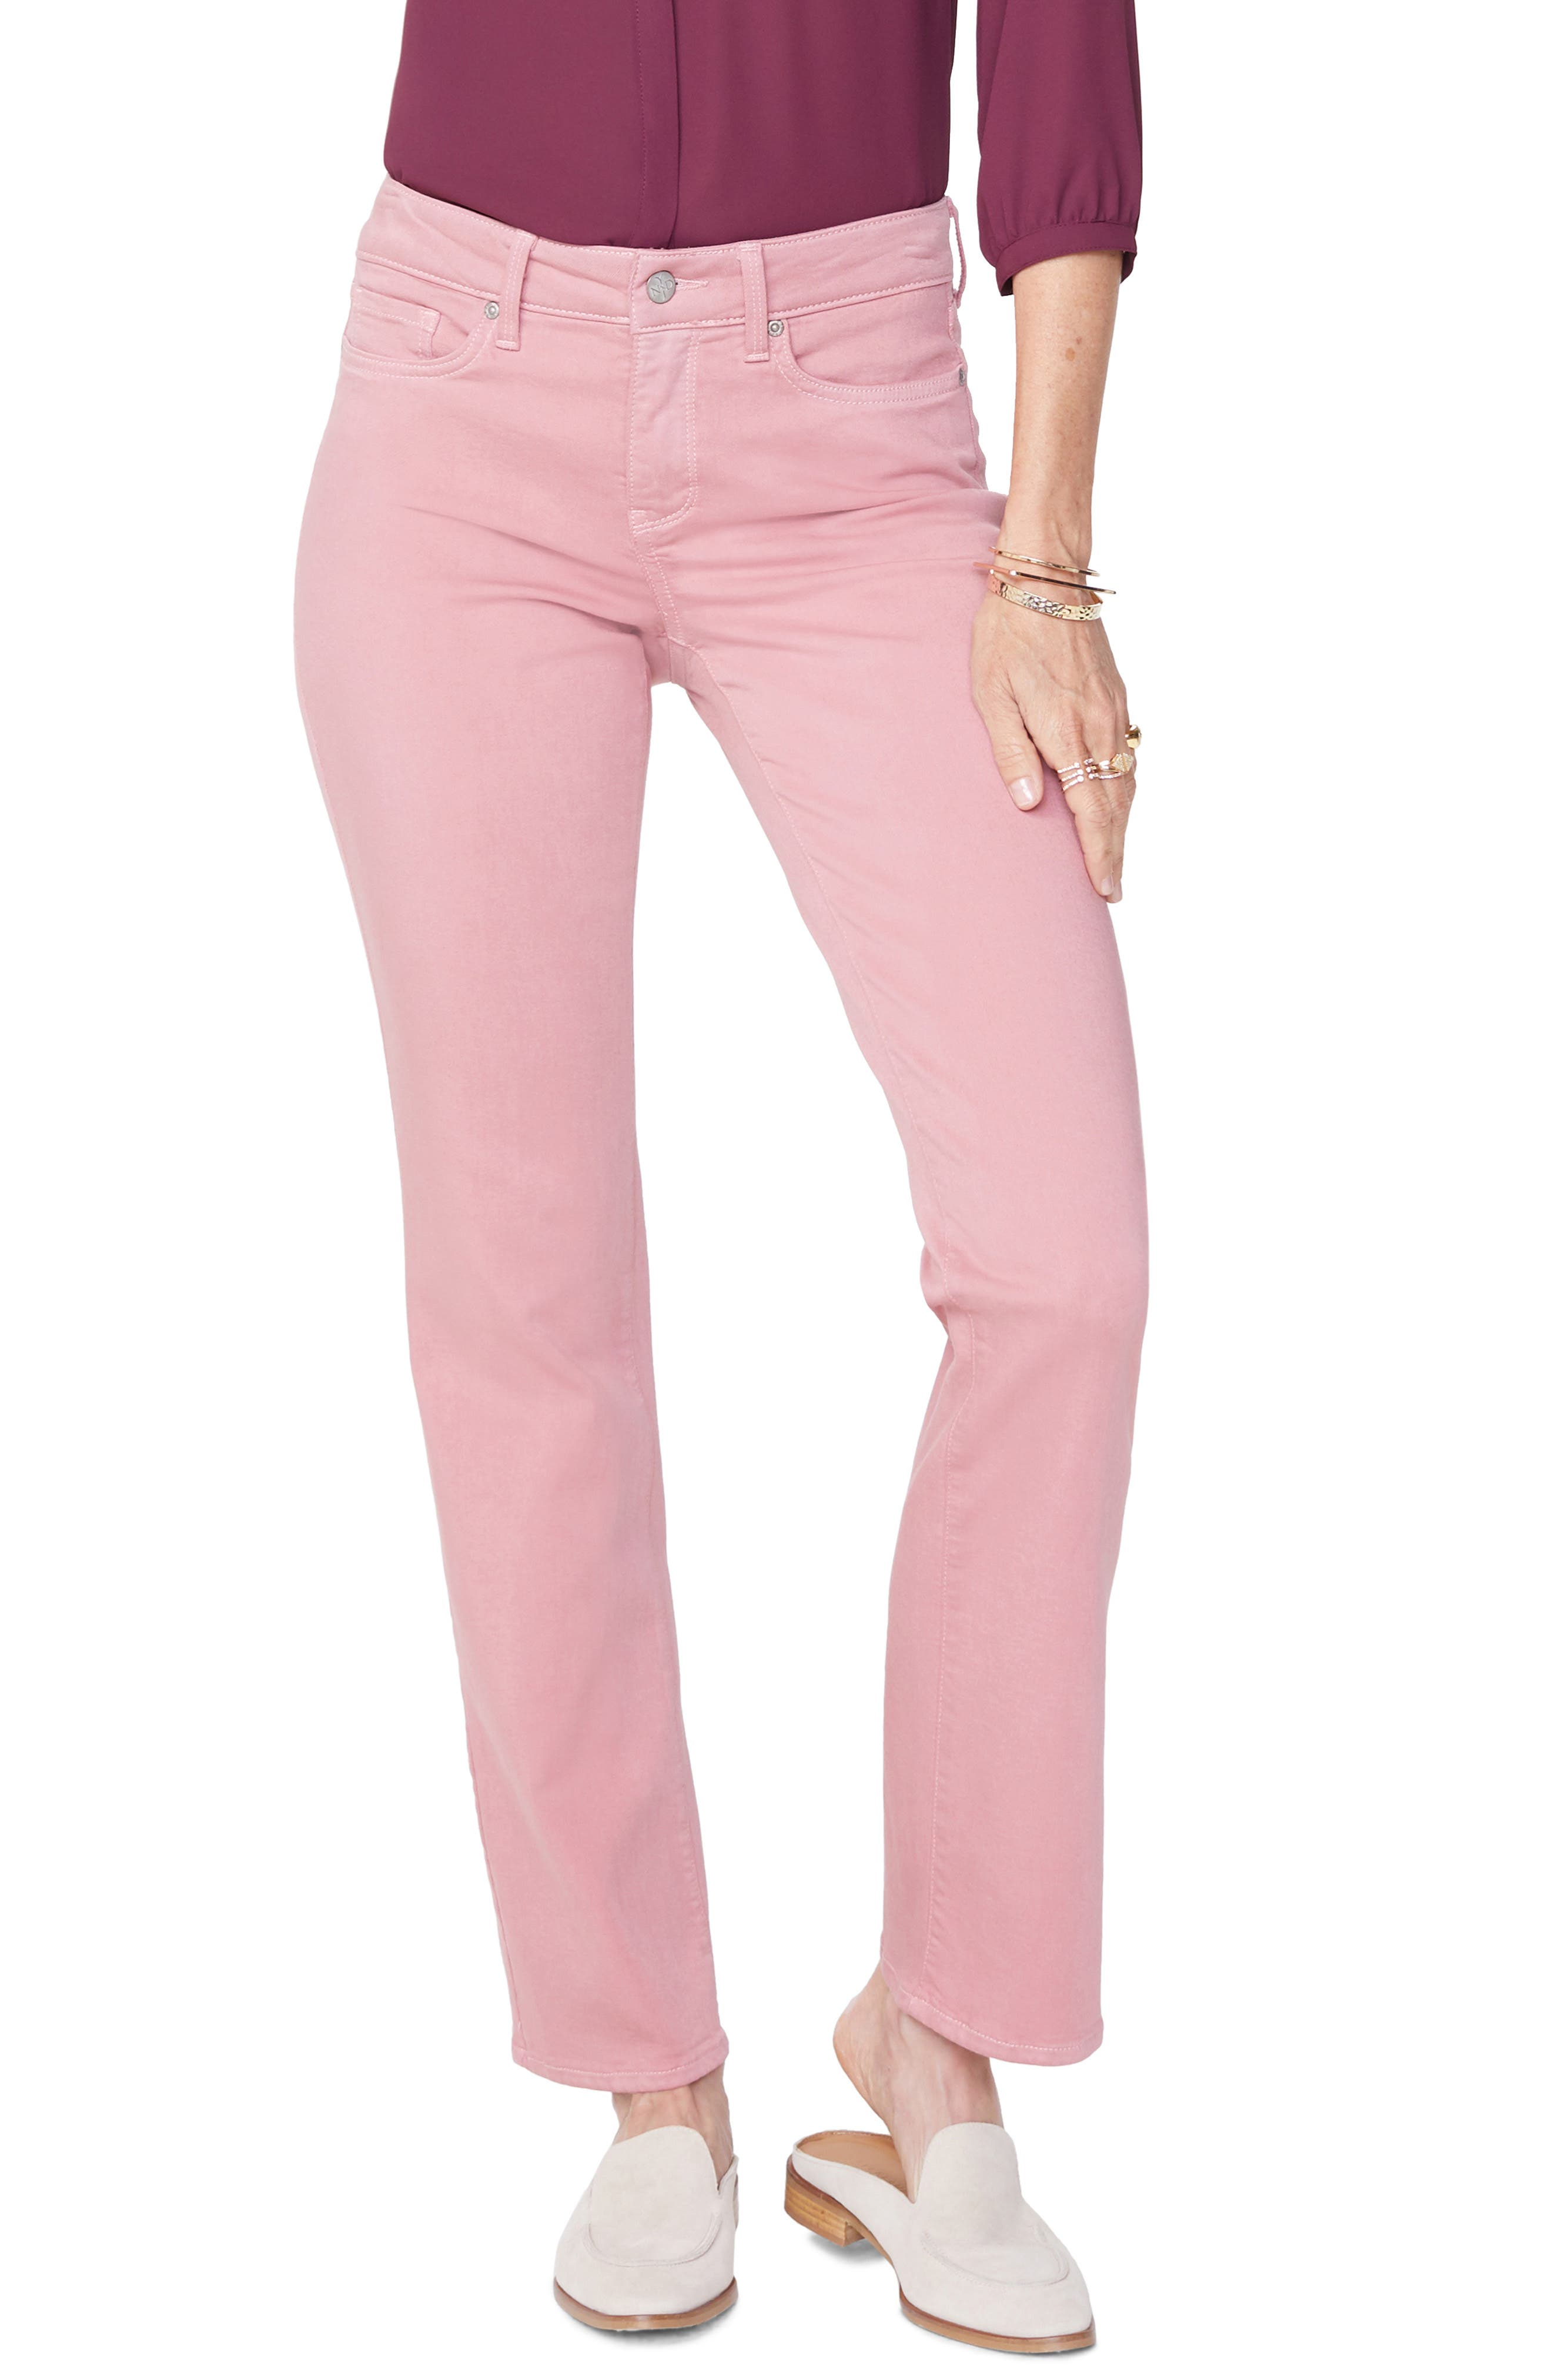 Marilyn Stretch Twill Straight Leg Pants,                             Main thumbnail 1, color,                             WOOD ROSE